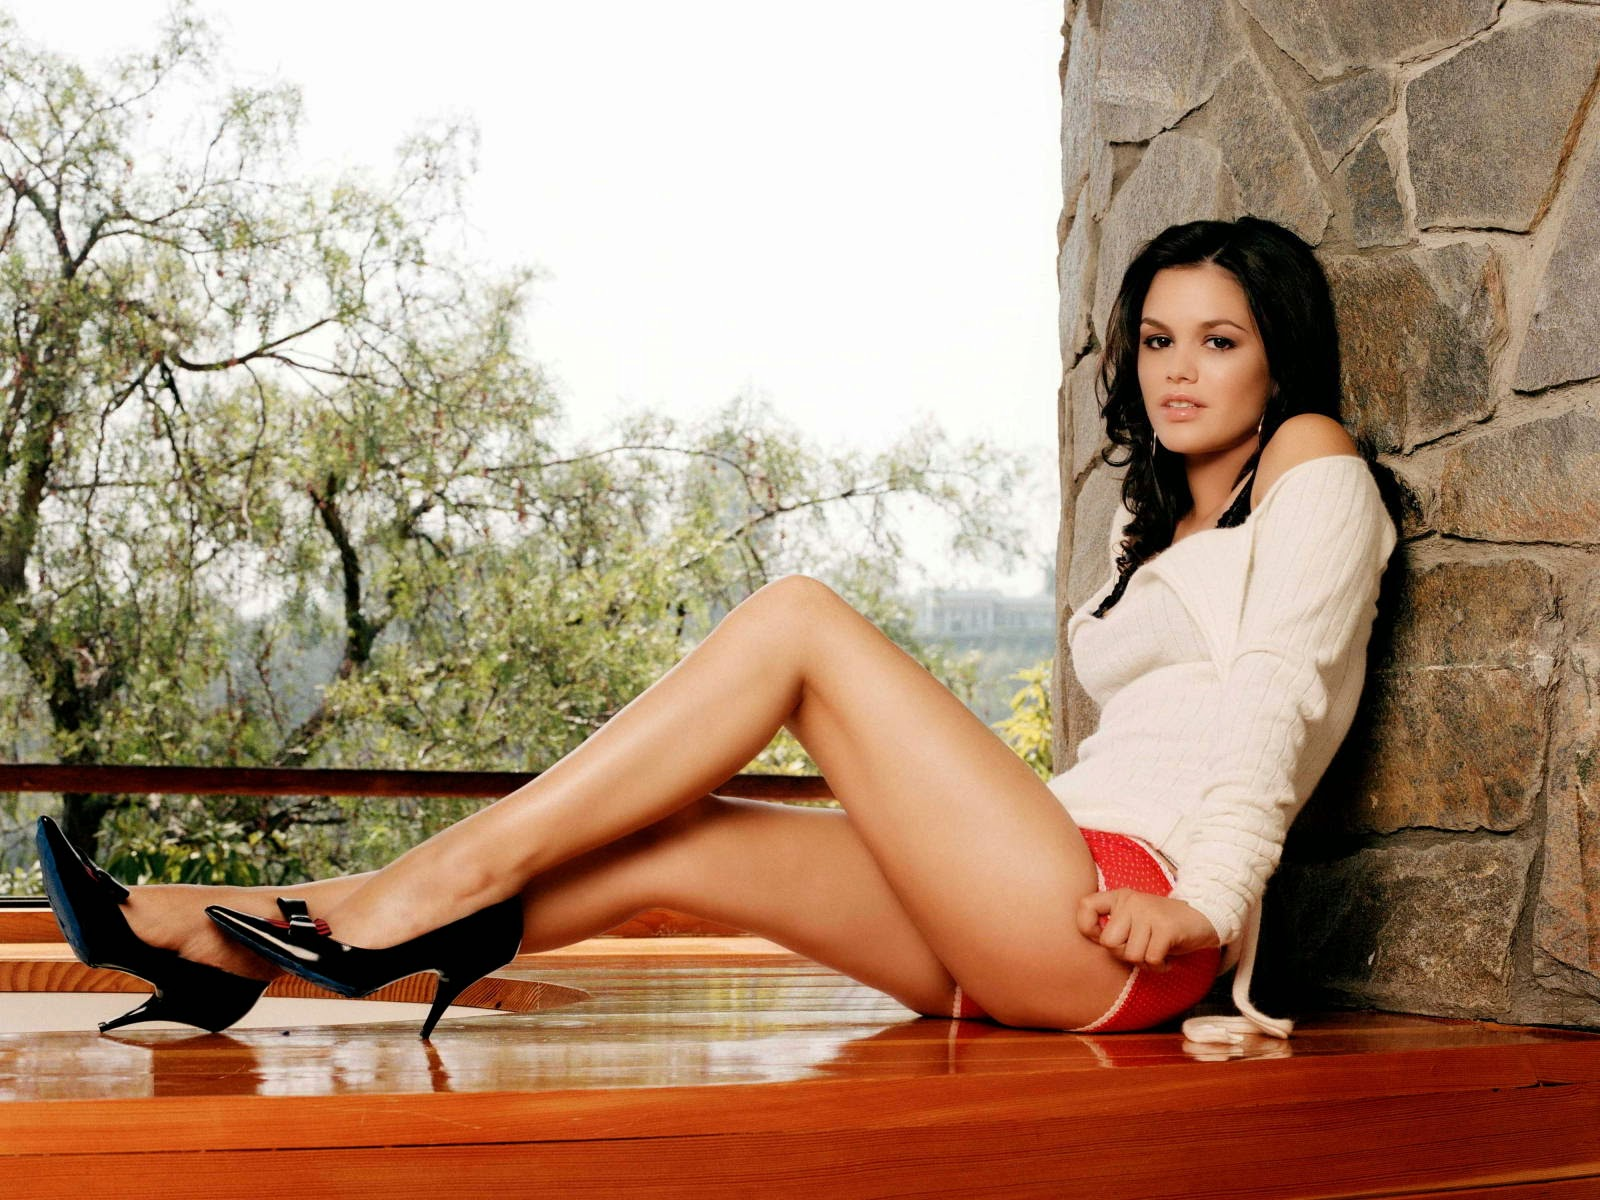 American Actress Celebrity sexy panty photo